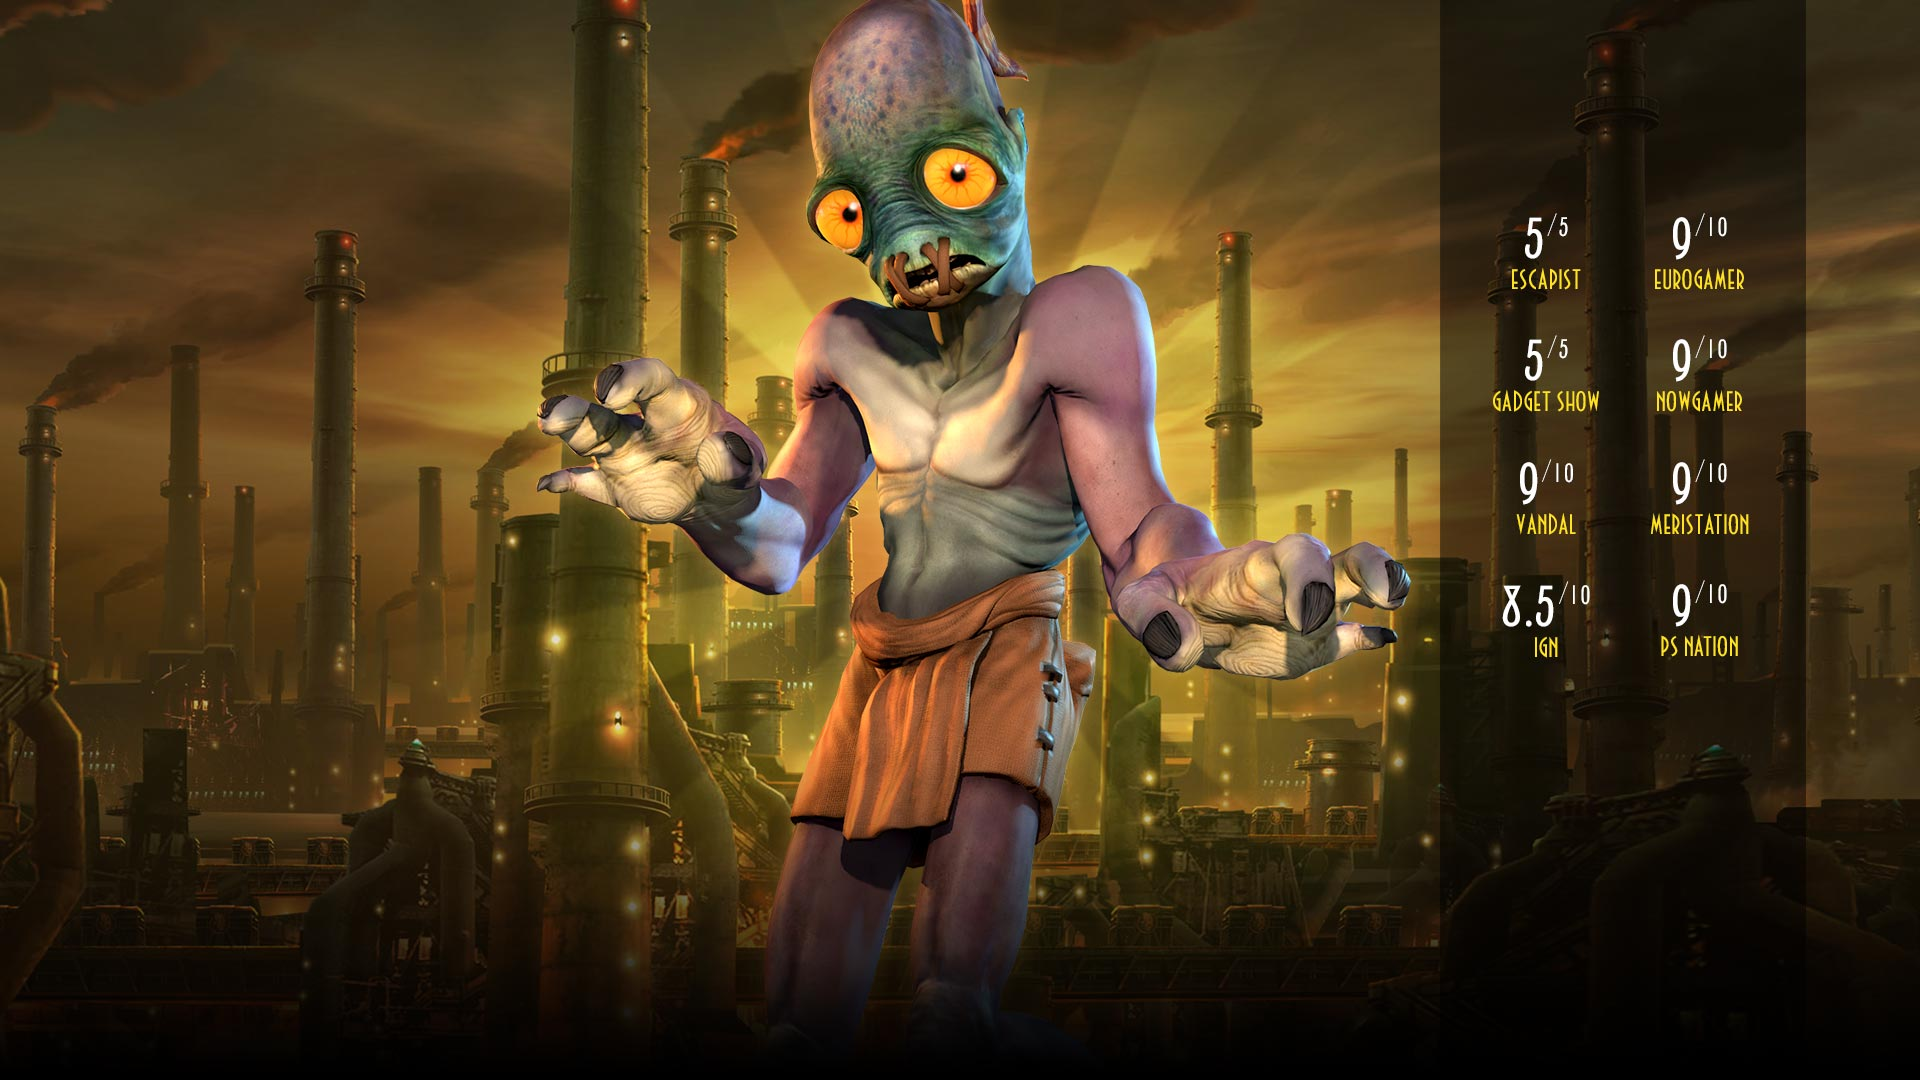 Oddworld: New 'n' Tasty coming soon for Linux, Mac and Windows PC